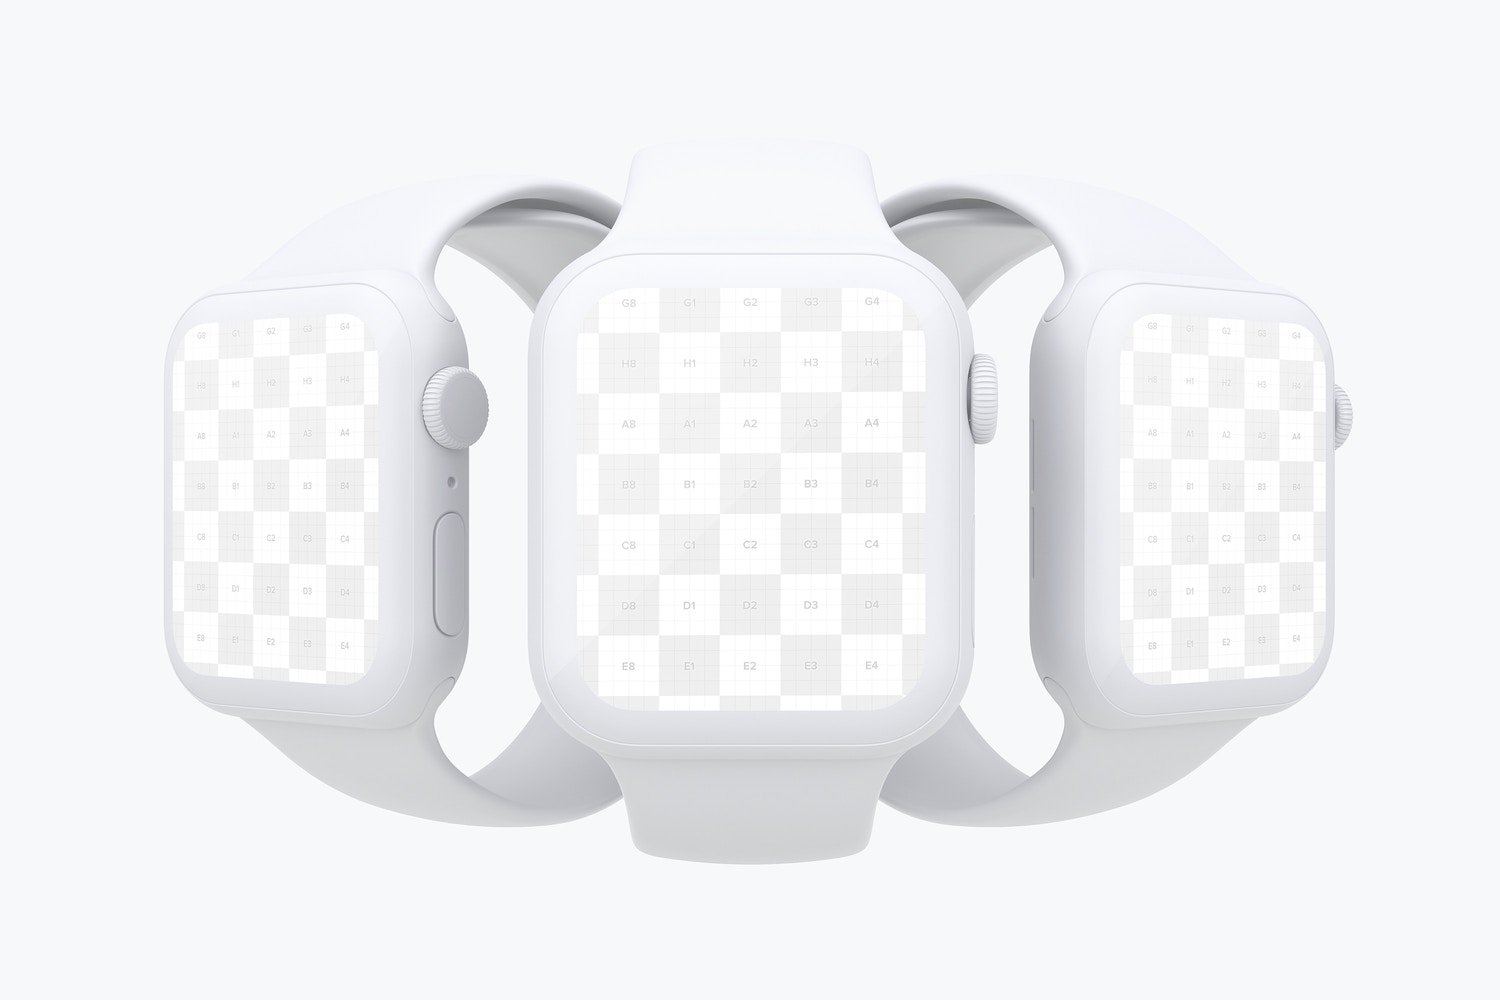 Clay Apple Watch Series 4 (44mm) Mockup 02 (2) by Original Mockups on Original Mockups